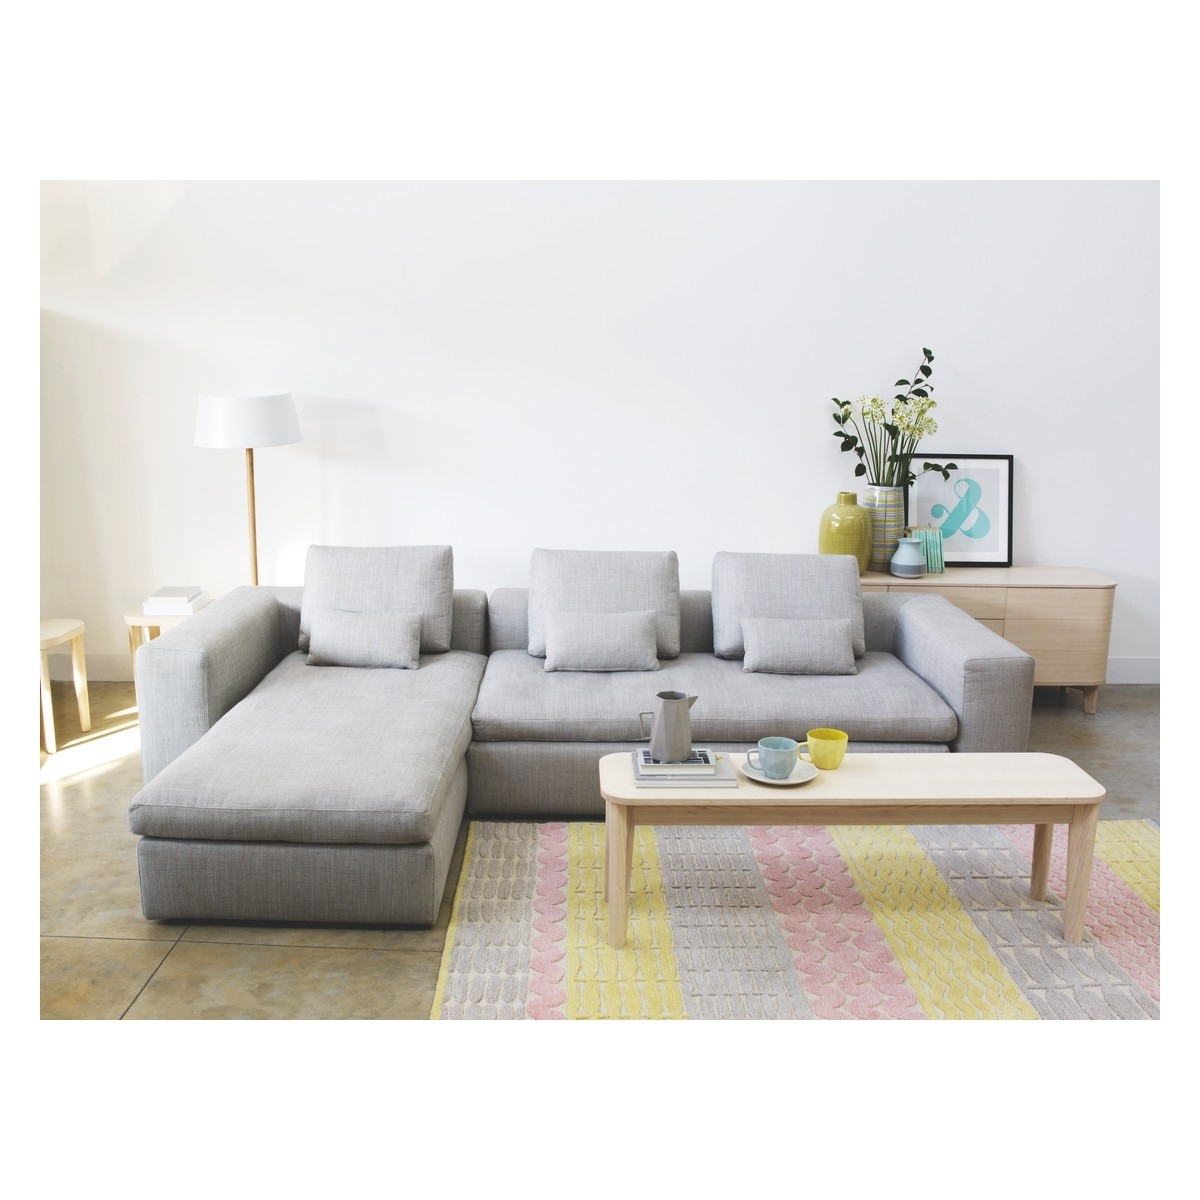 Preferred Chaise Beds Throughout Best Chaise Longue Sofa Beds 94 For Harveys Corner Sofa Bed With (View 13 of 15)